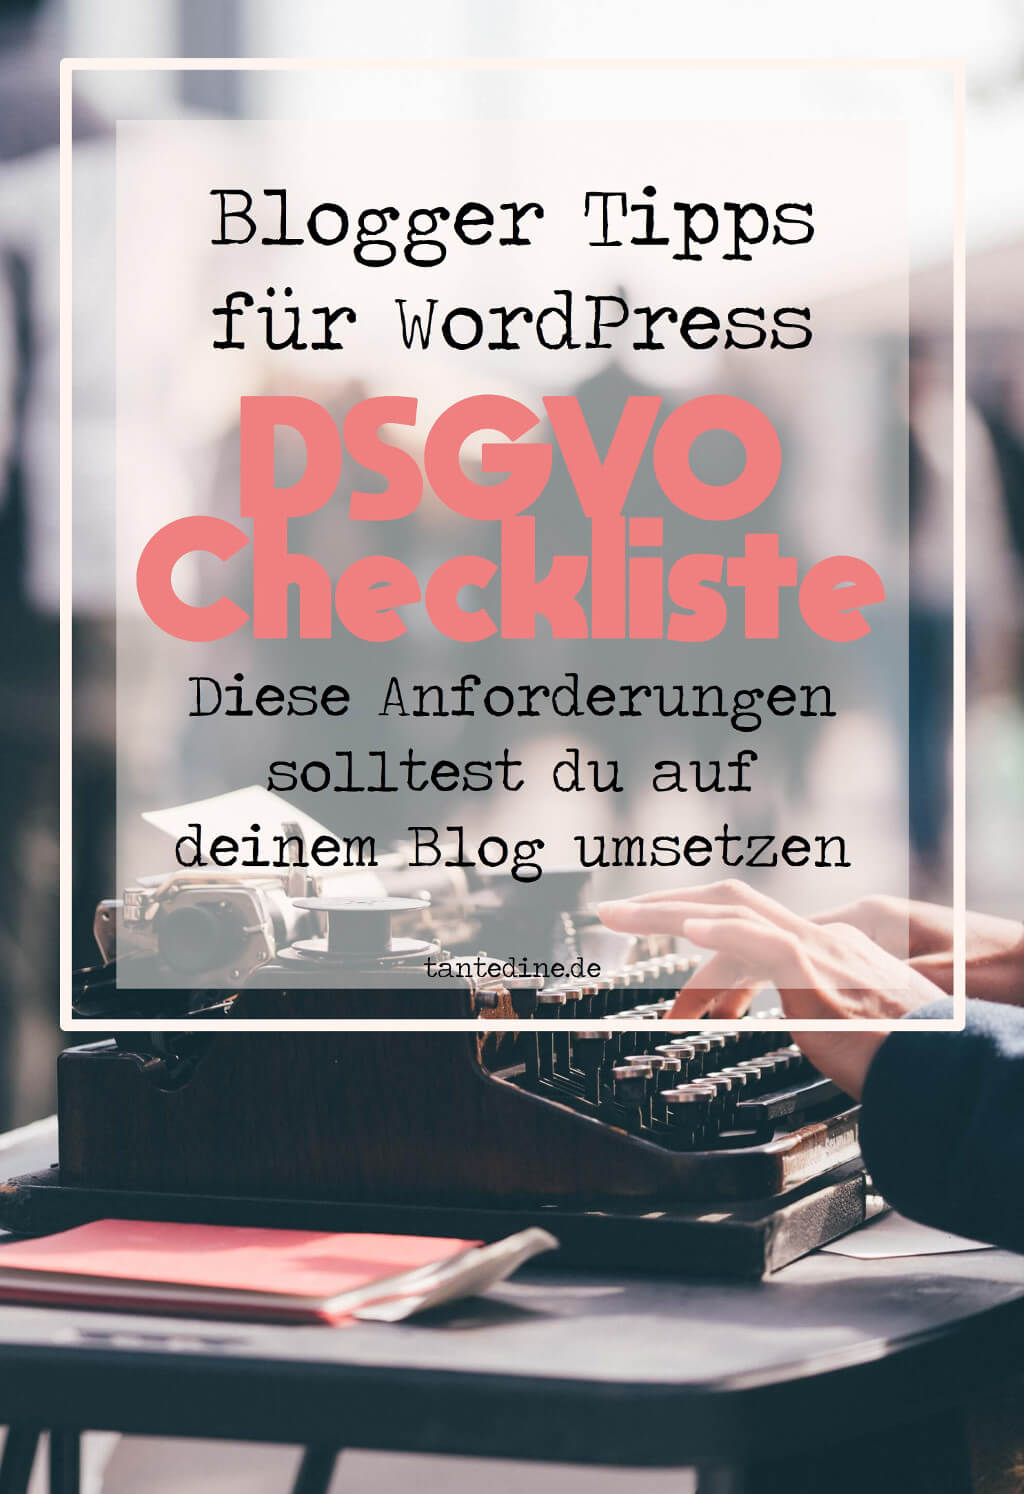 DSGVO Checkliste Blogger Tipps WordPress tantedine